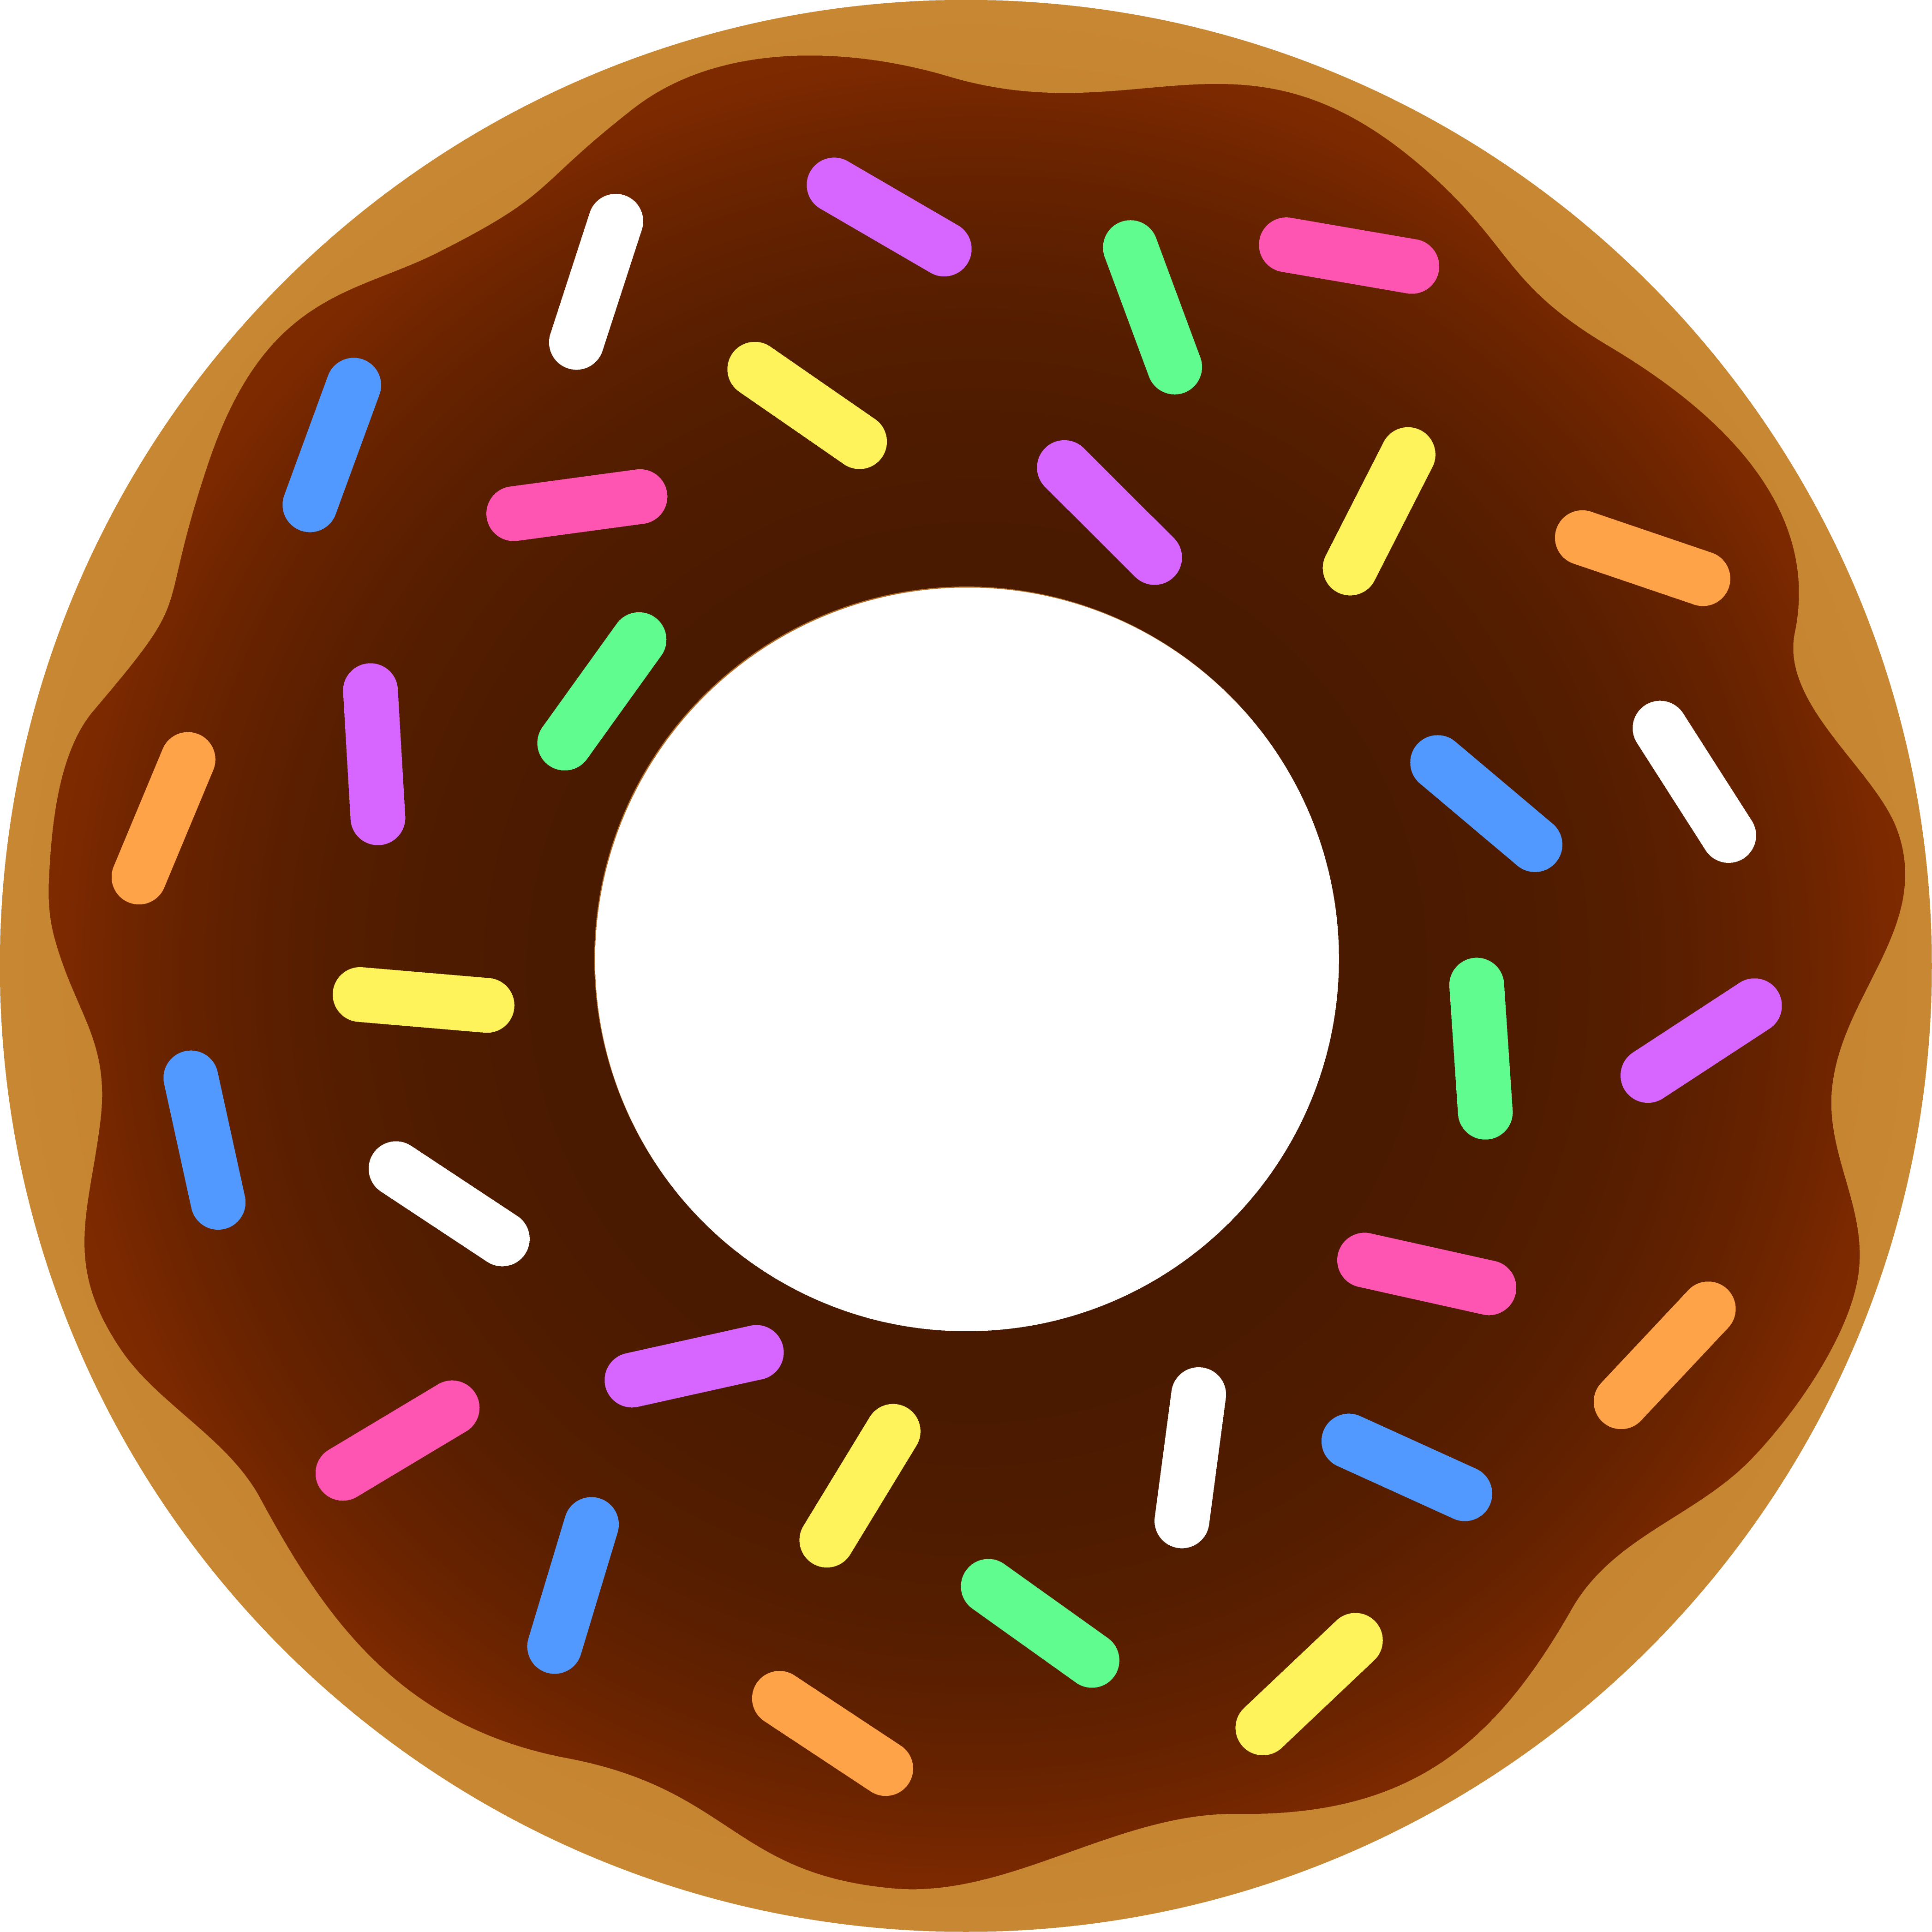 Christmas donut clipart graphic royalty free Dunkin' Donuts Coffee and doughnuts Clip art - donut cartoon 4187 ... graphic royalty free